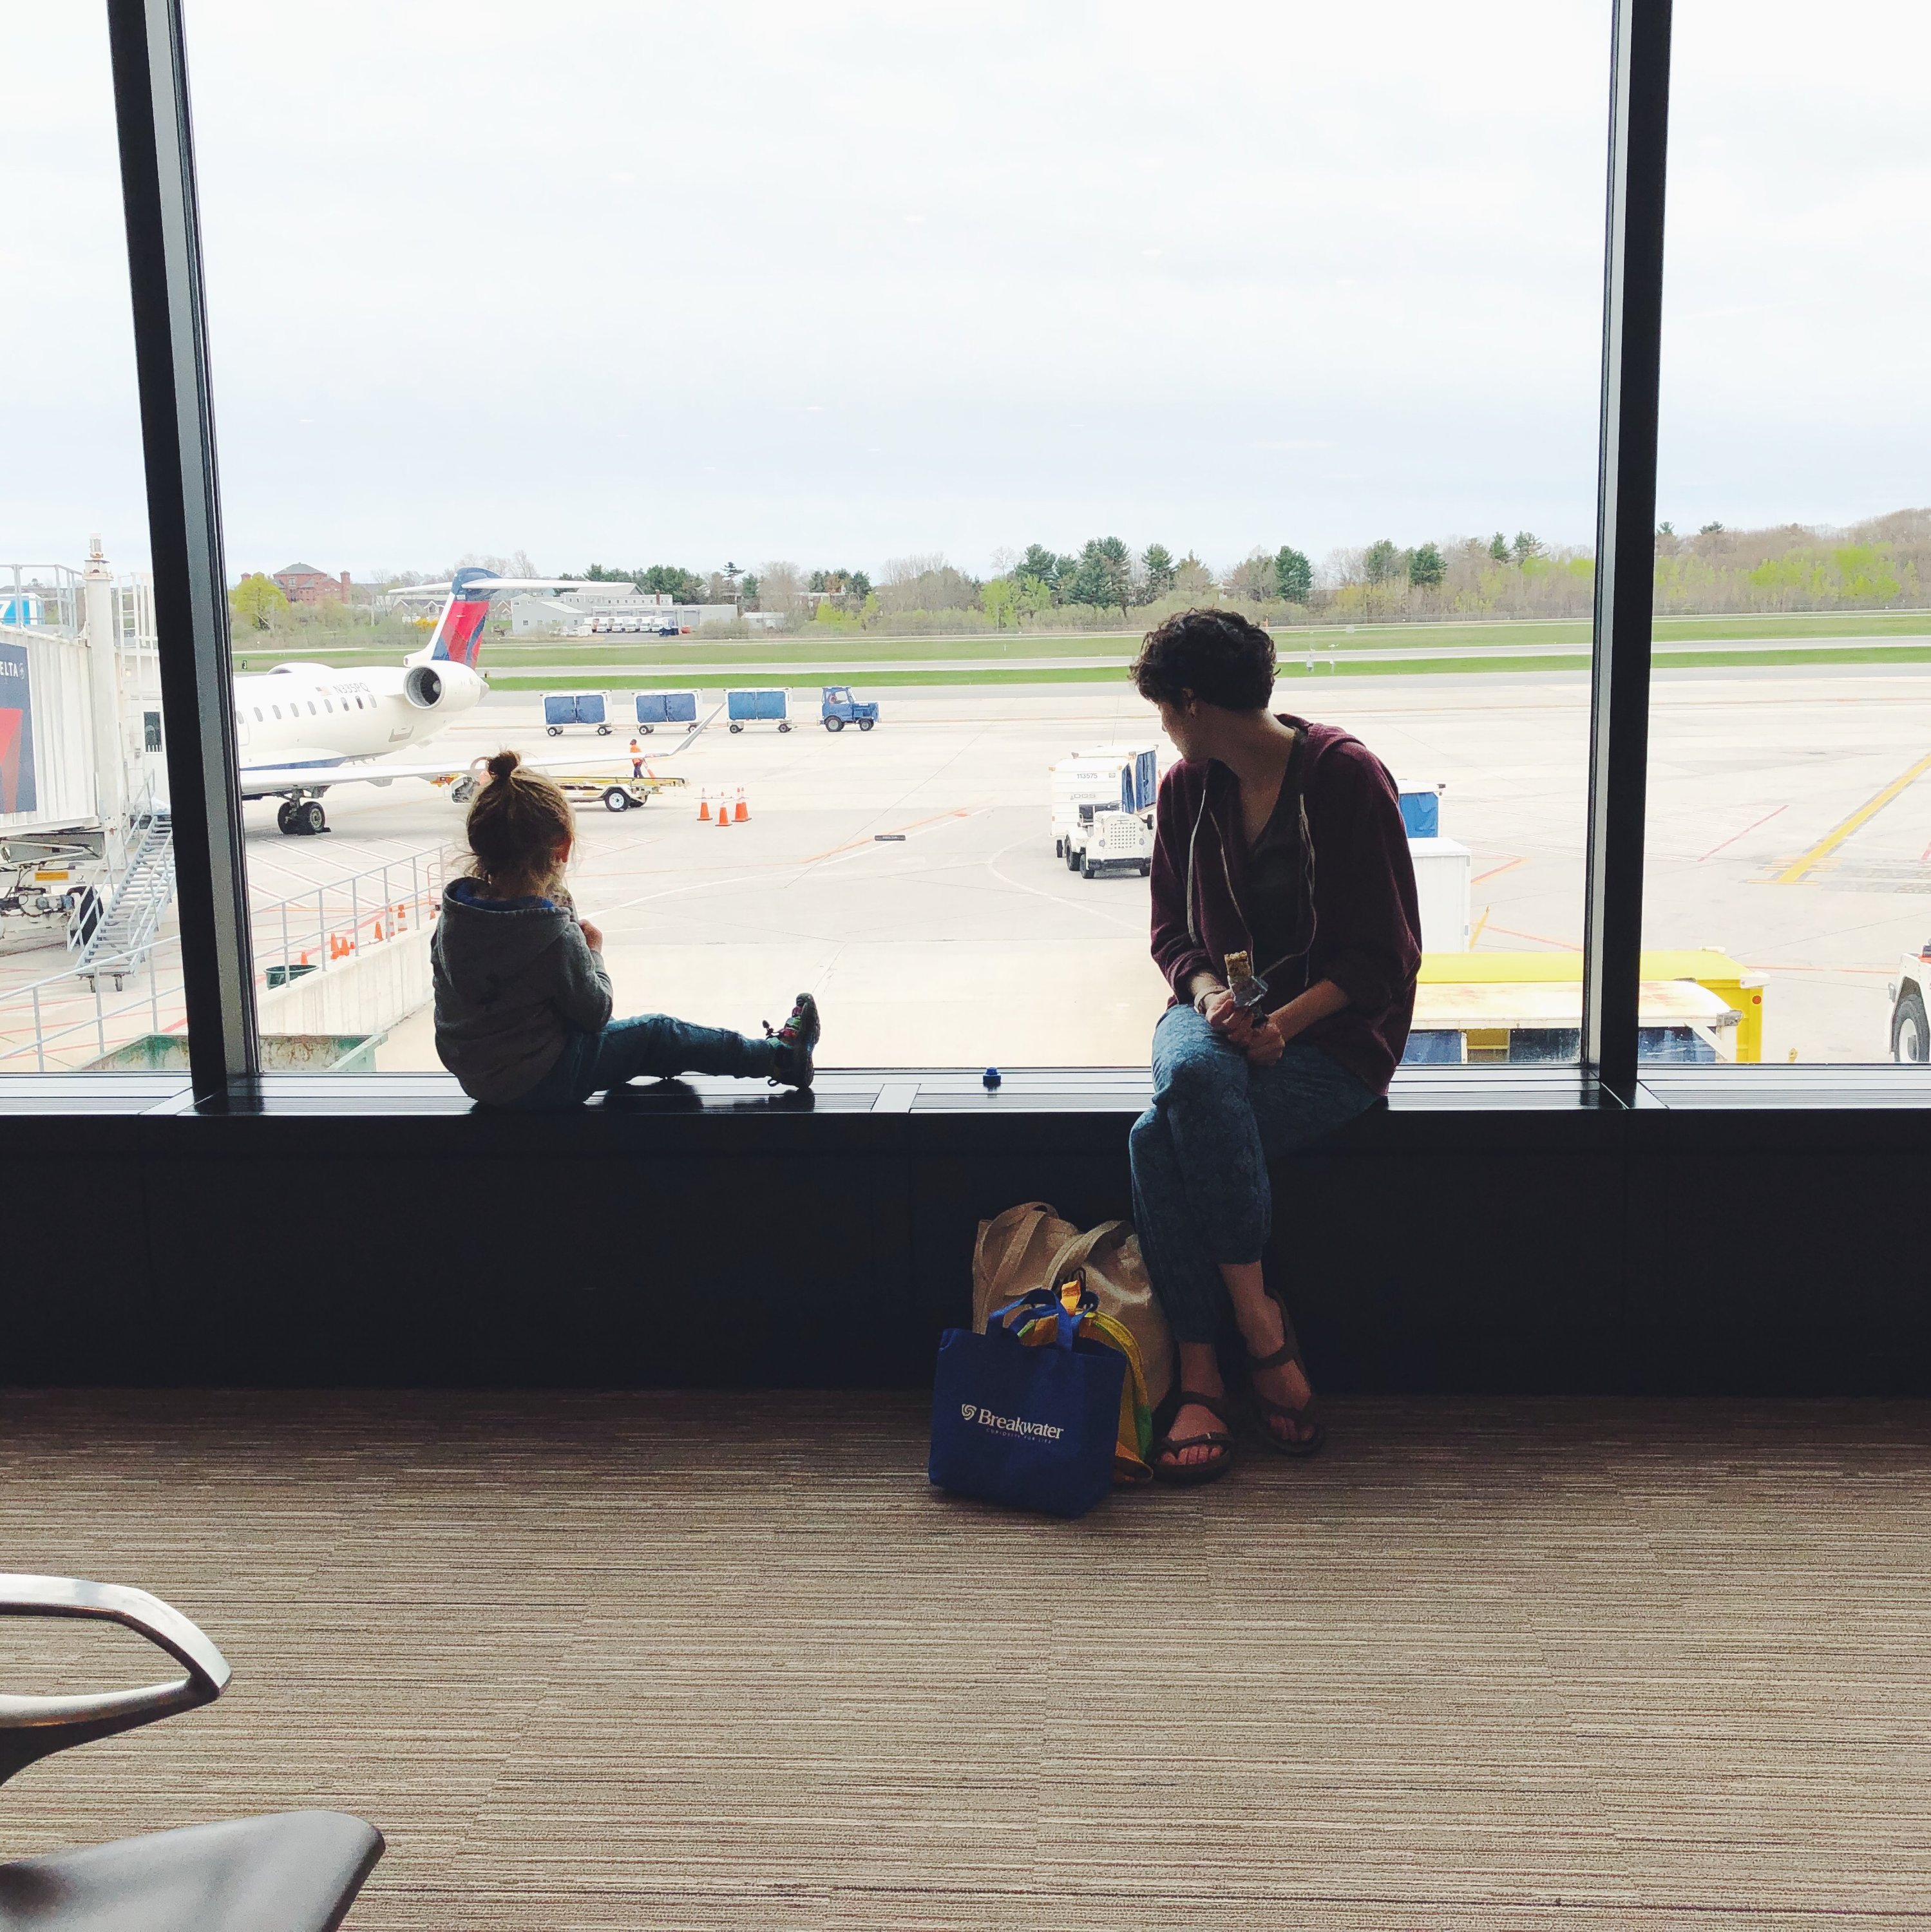 Kid and mom looking out an airport window at planes and equipment.